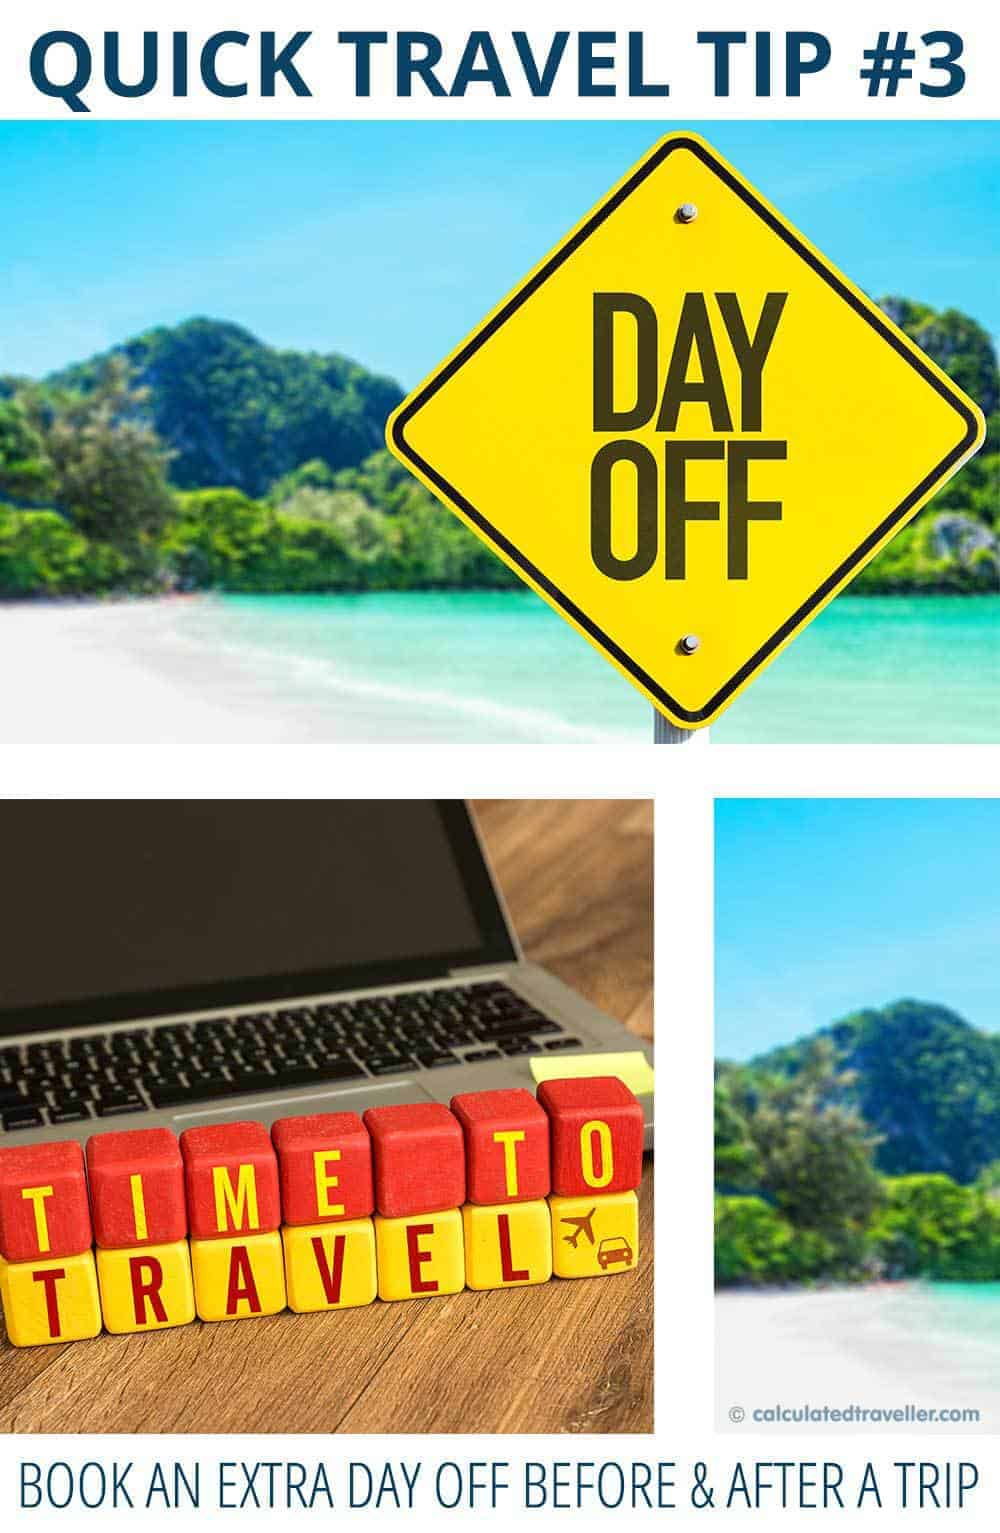 Quick Travel Tip #3 by Calculated Traveller – Book an Extra Day off Before and After a Trip